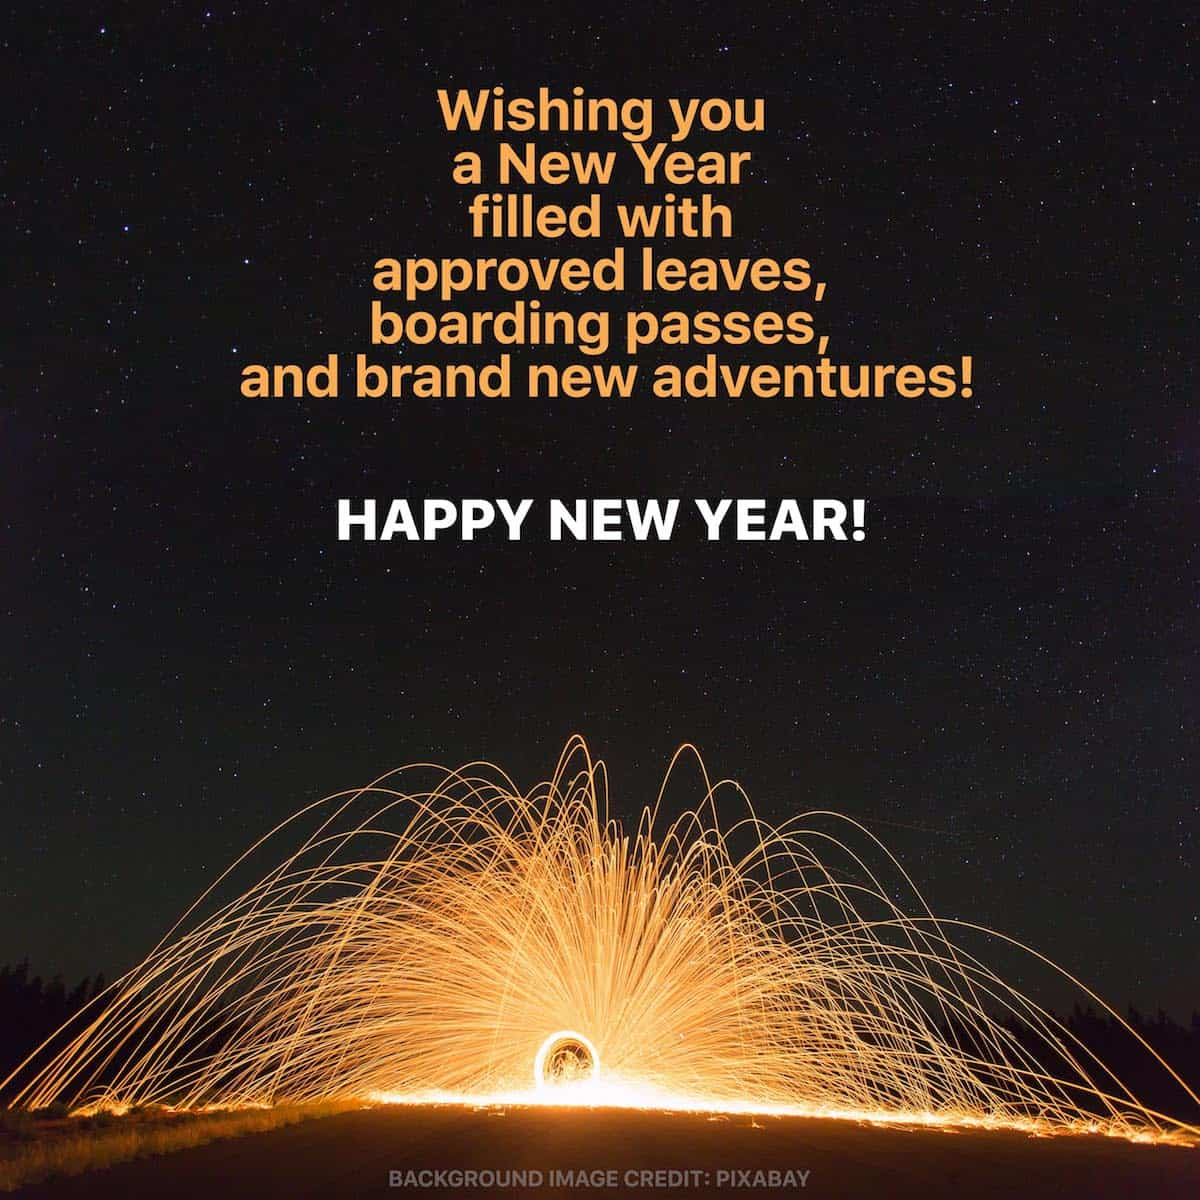 wishing you a new year filled with approved leaves boarding passes and brand new adventures